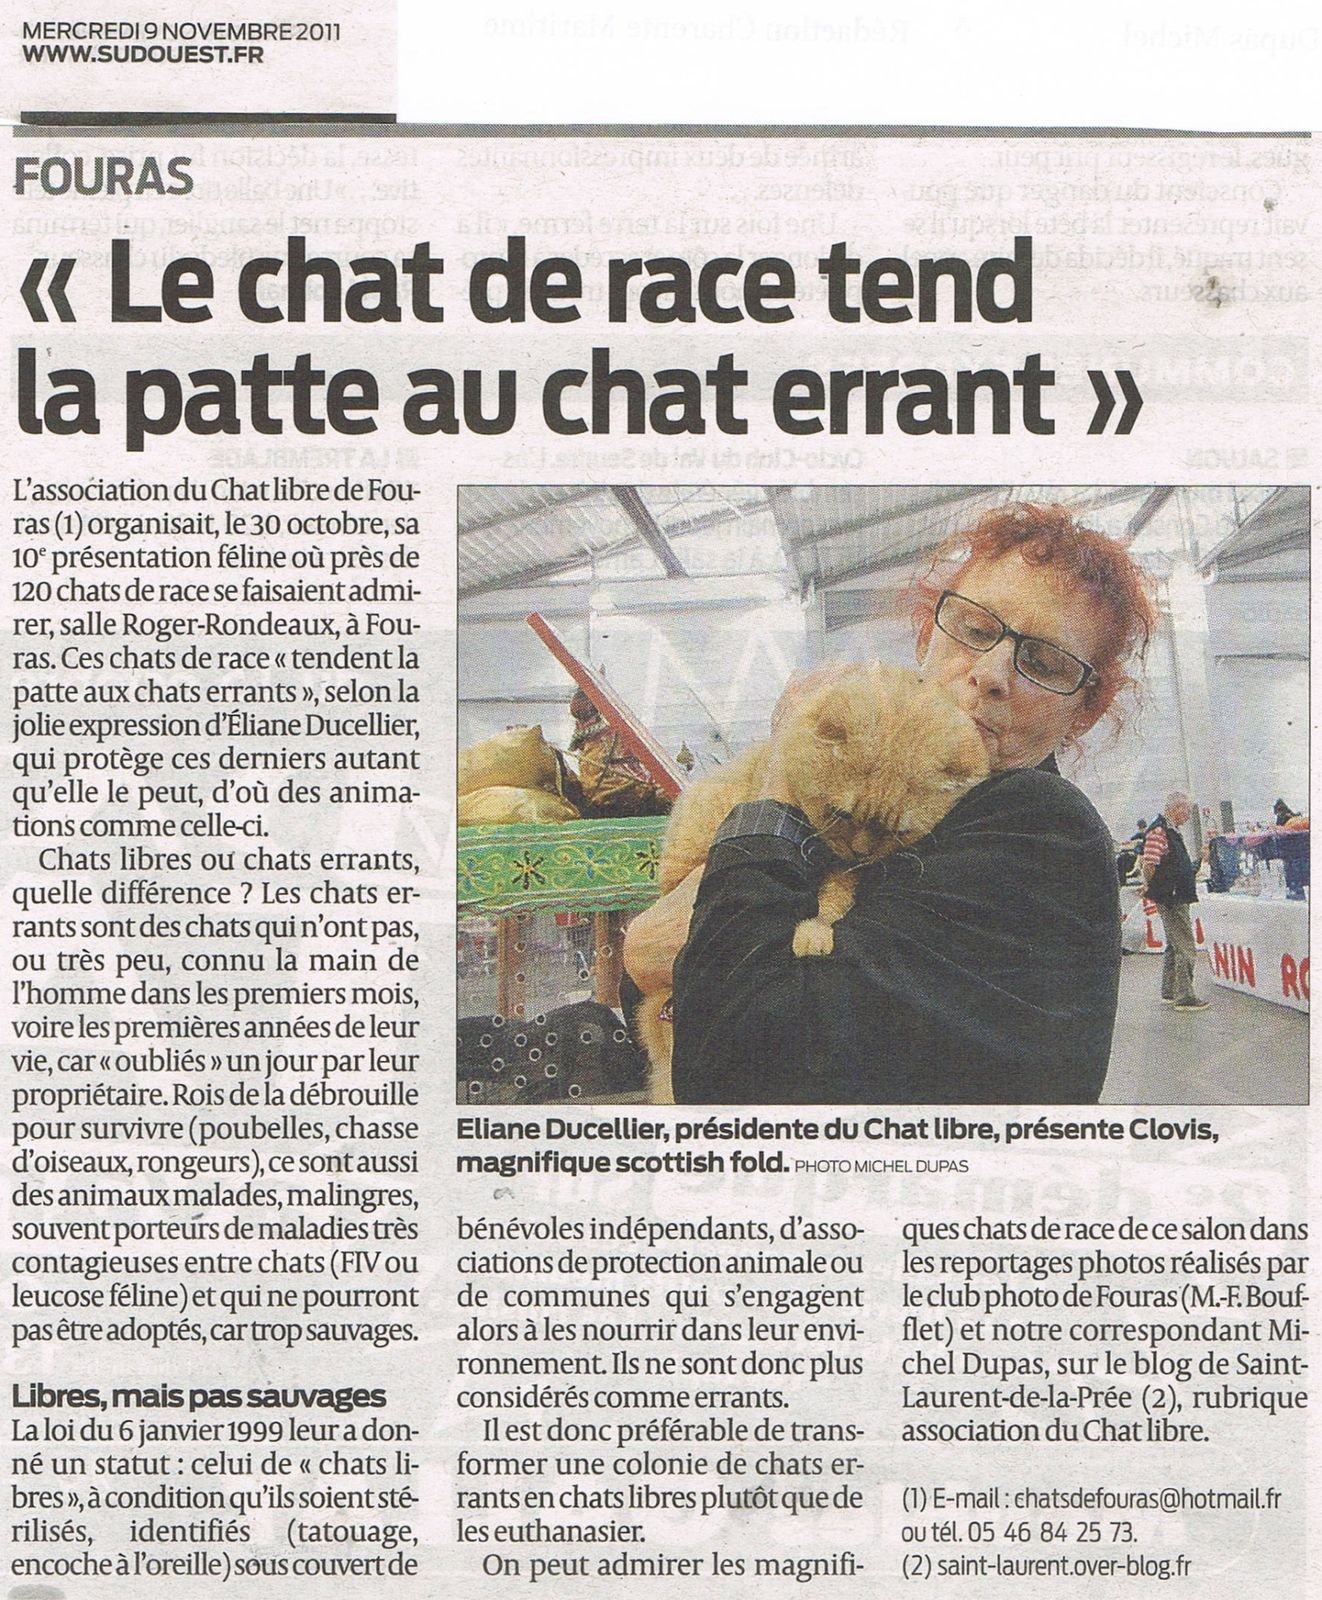 art.SO-du-9-nov.-2011.--Le-chat-de-race-.jpg